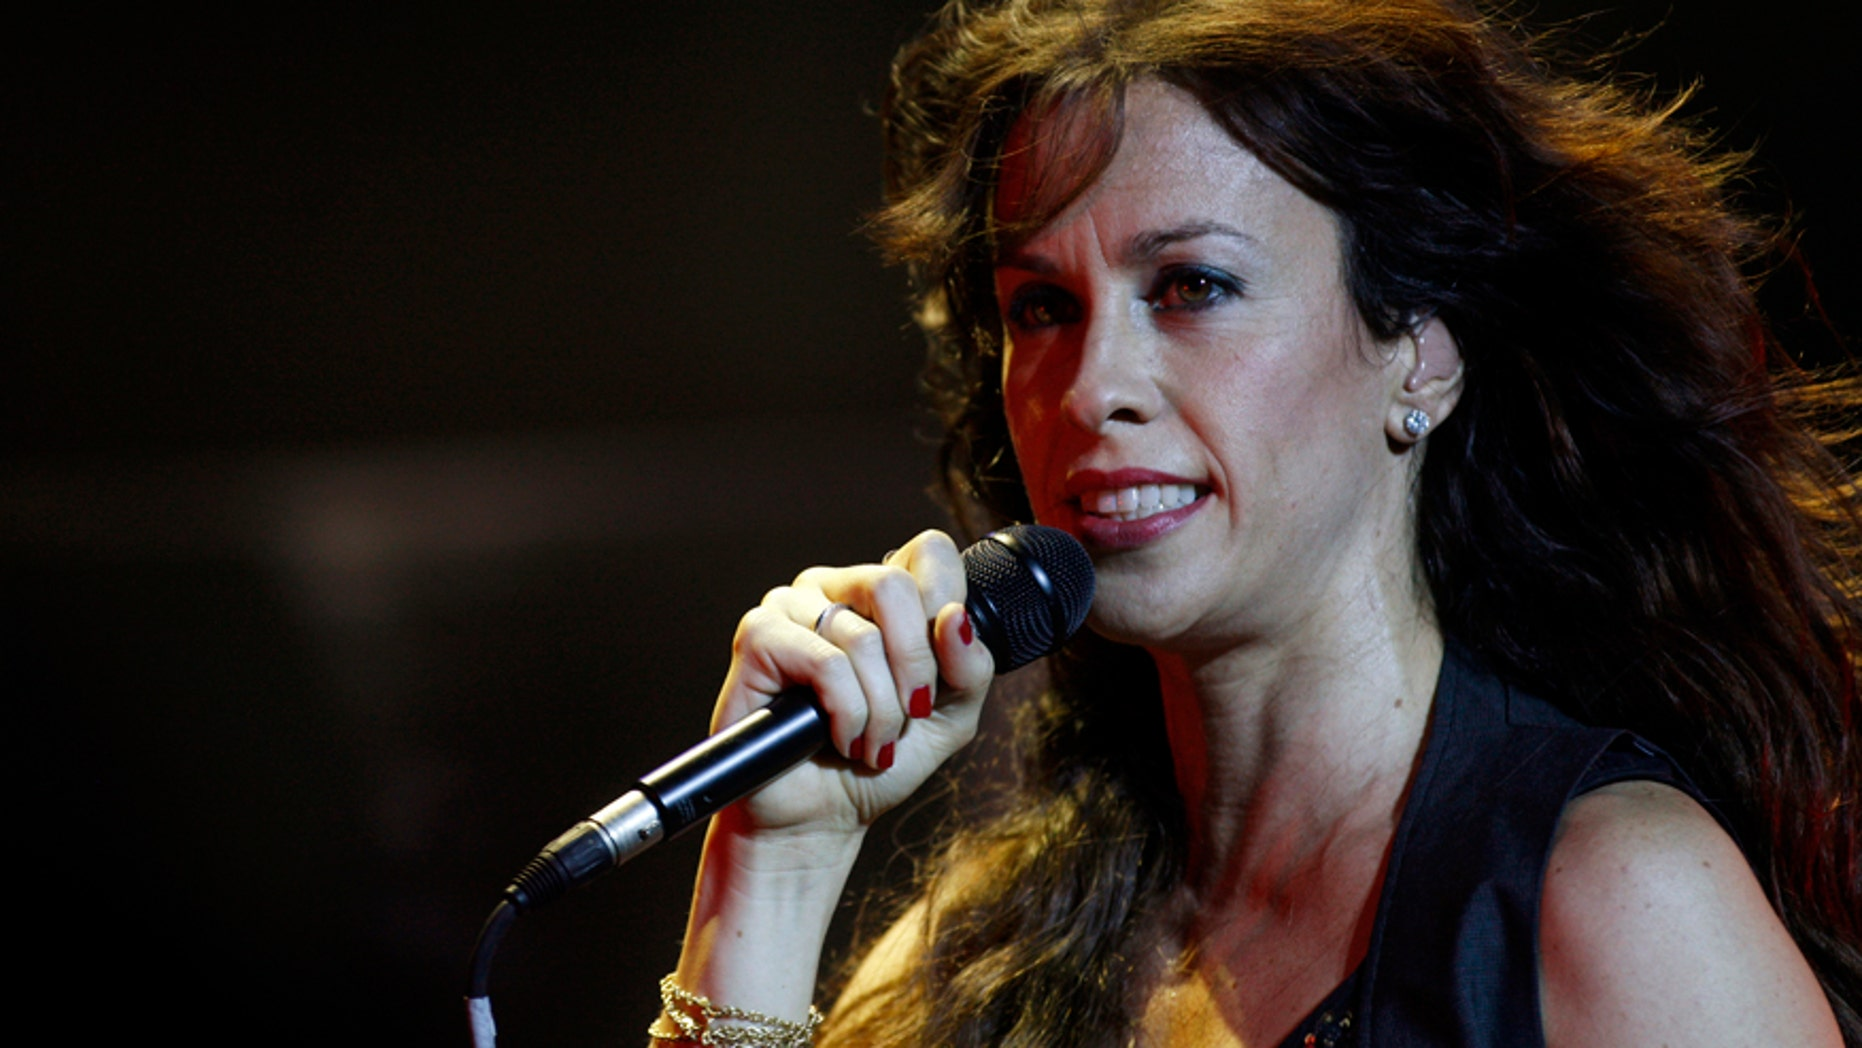 Canadian musician Alanis Morissette performs during a concert.